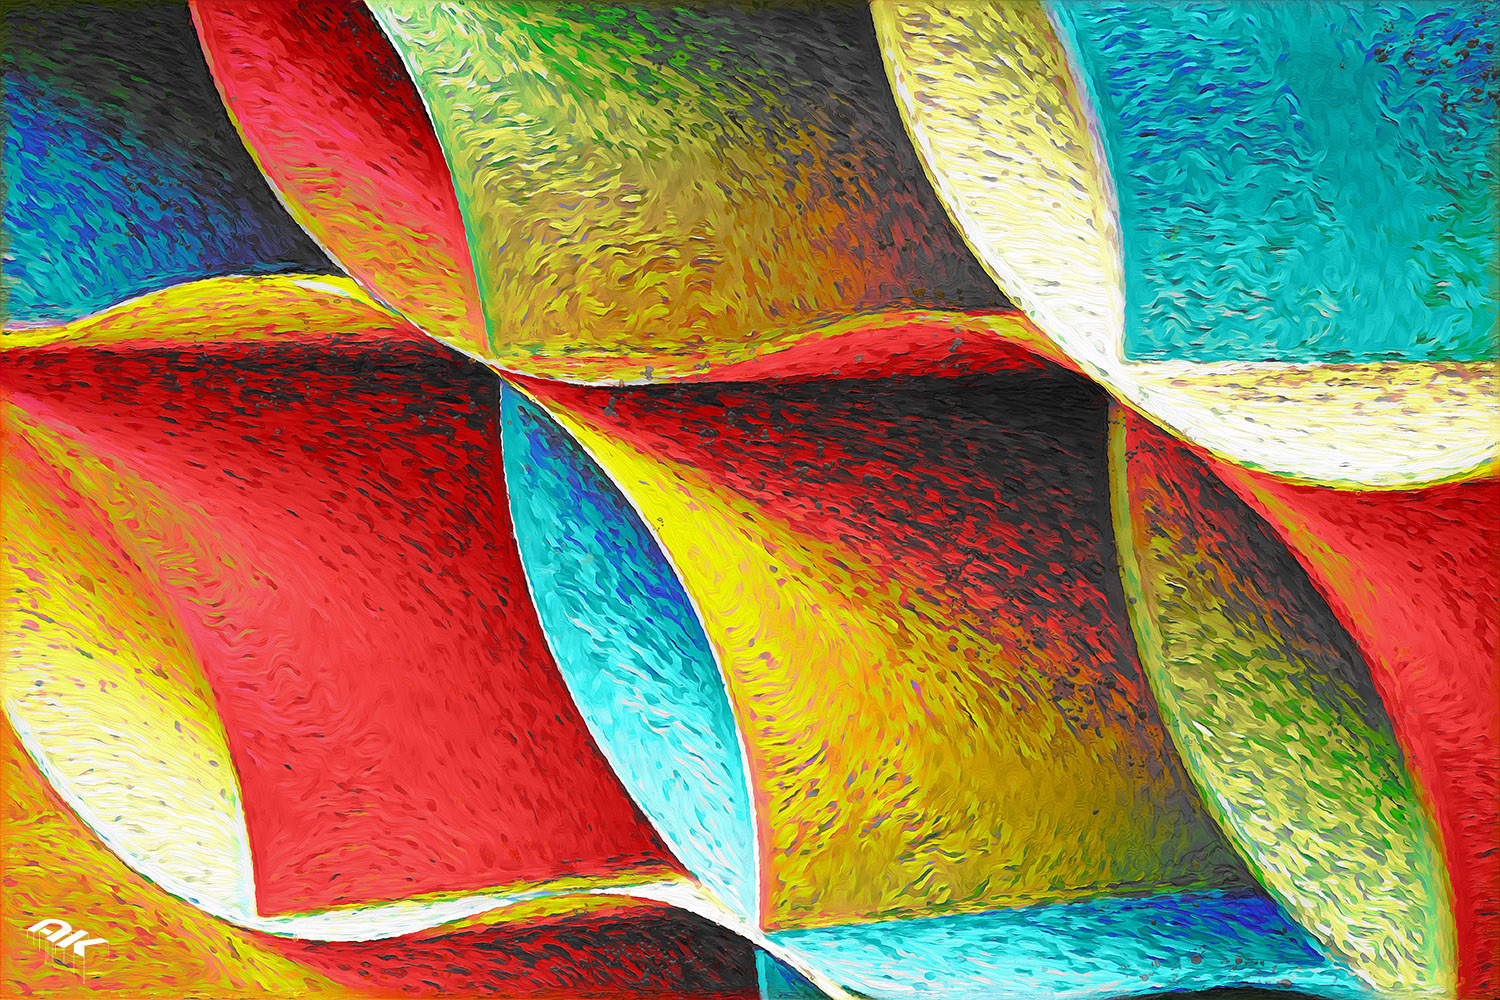 detail of curved, colored sheets of paper